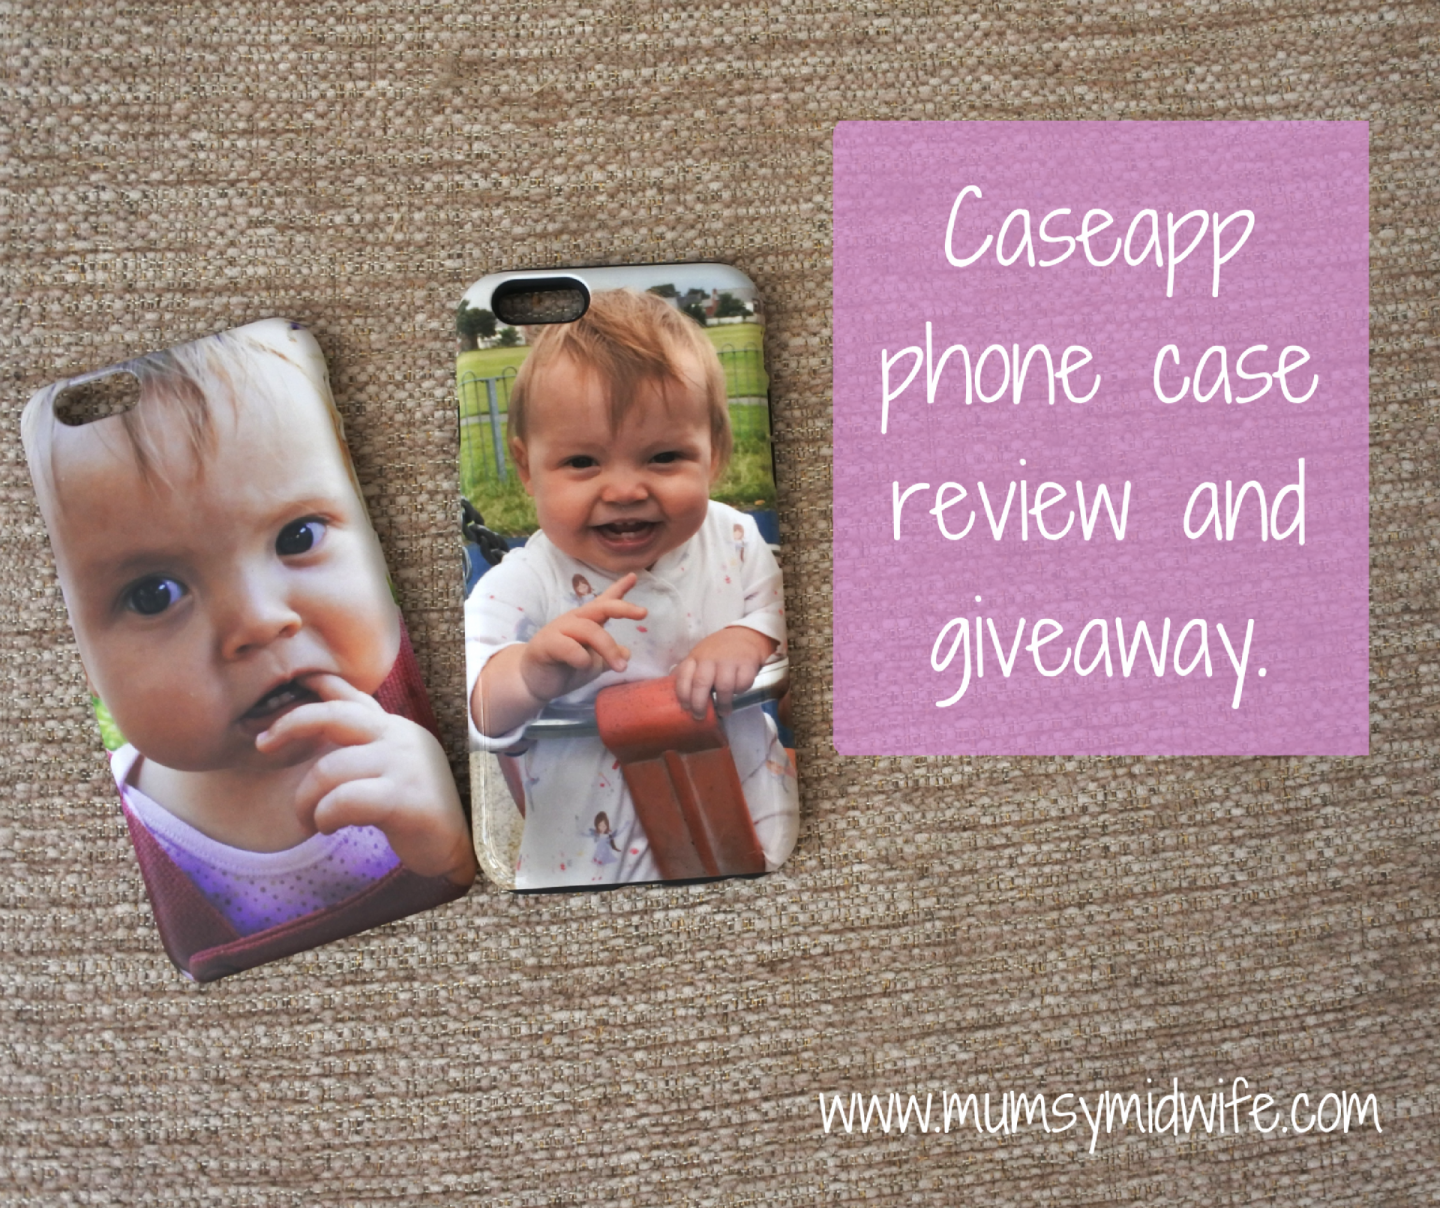 Caseapp phone case review